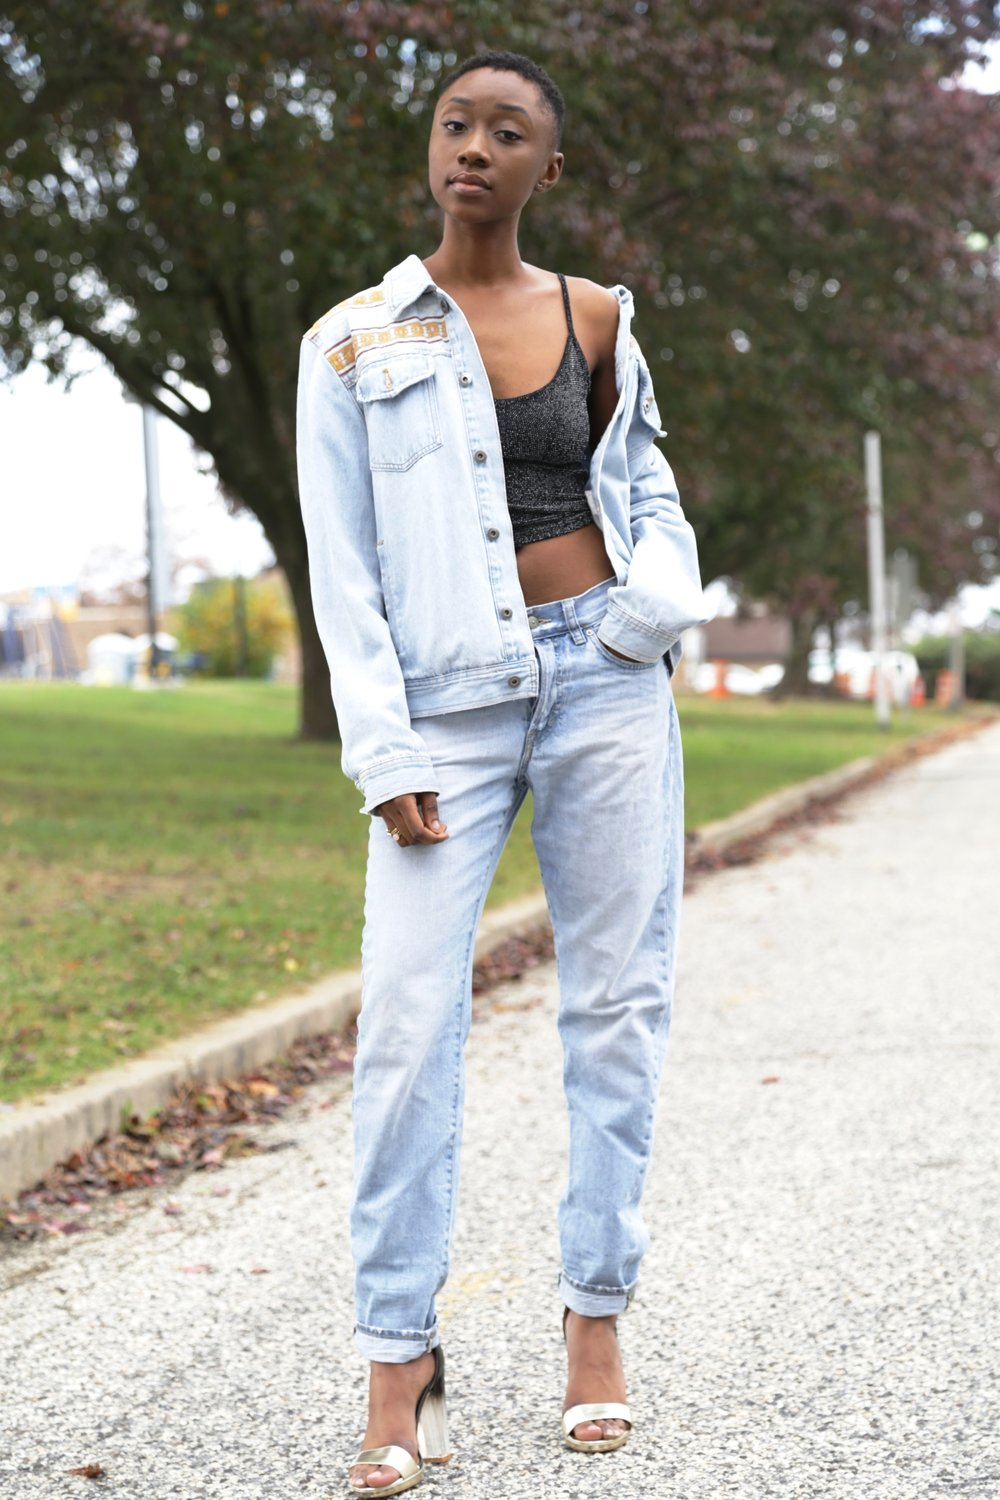 Canadian tux - Dress your all denim look, from day to night